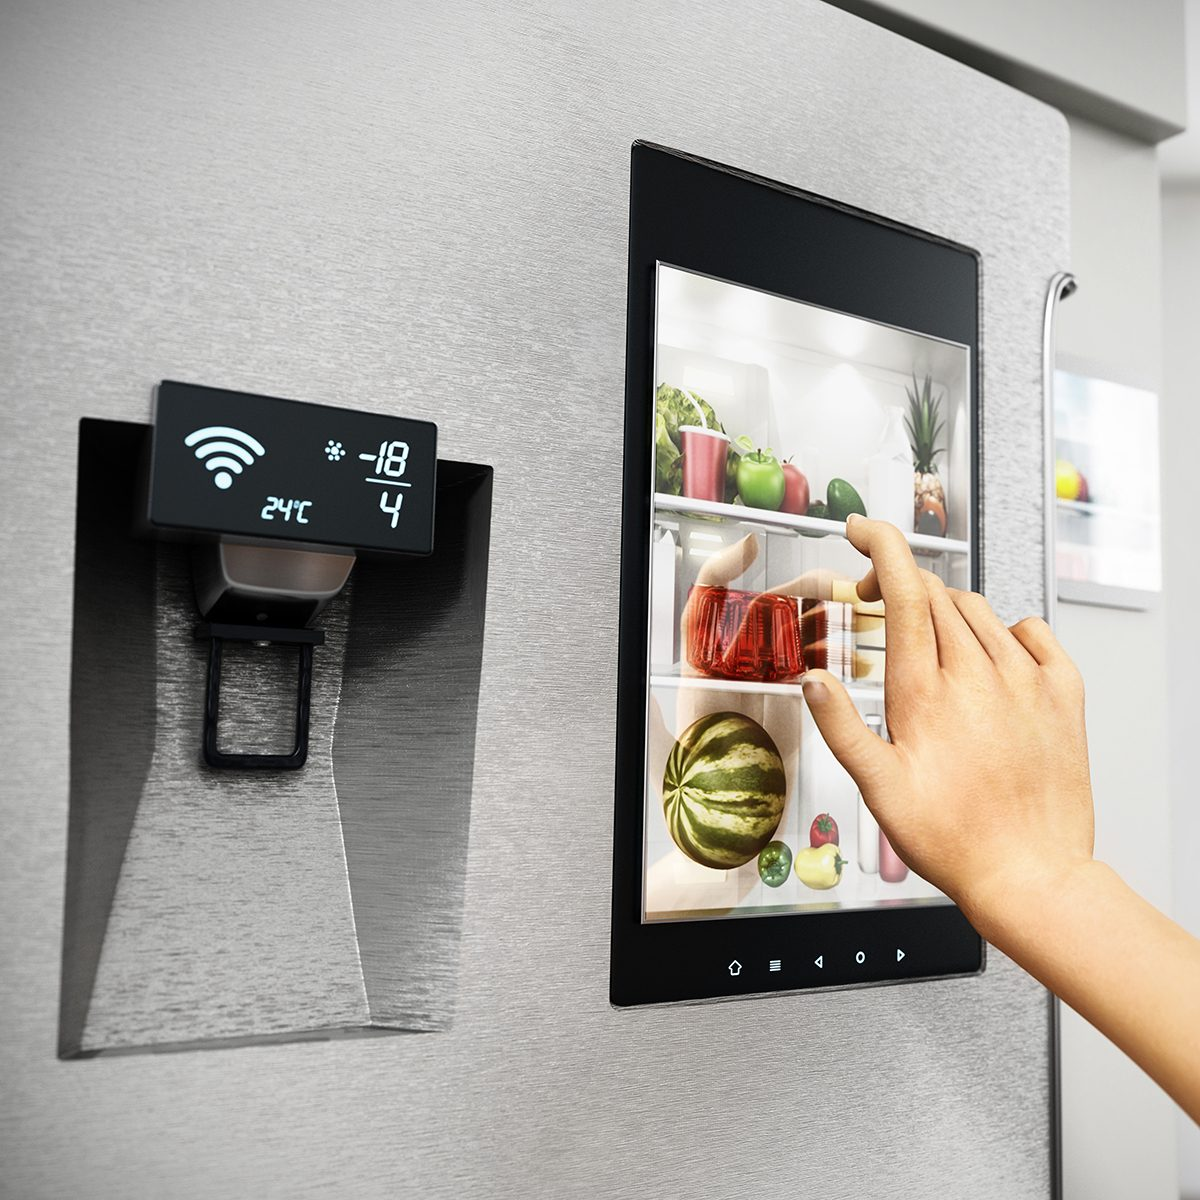 SMART KITCHENS ​ GET SMARTER​ Food Trends Report, Hand controls smart refrigerator interface with an image of the interior.